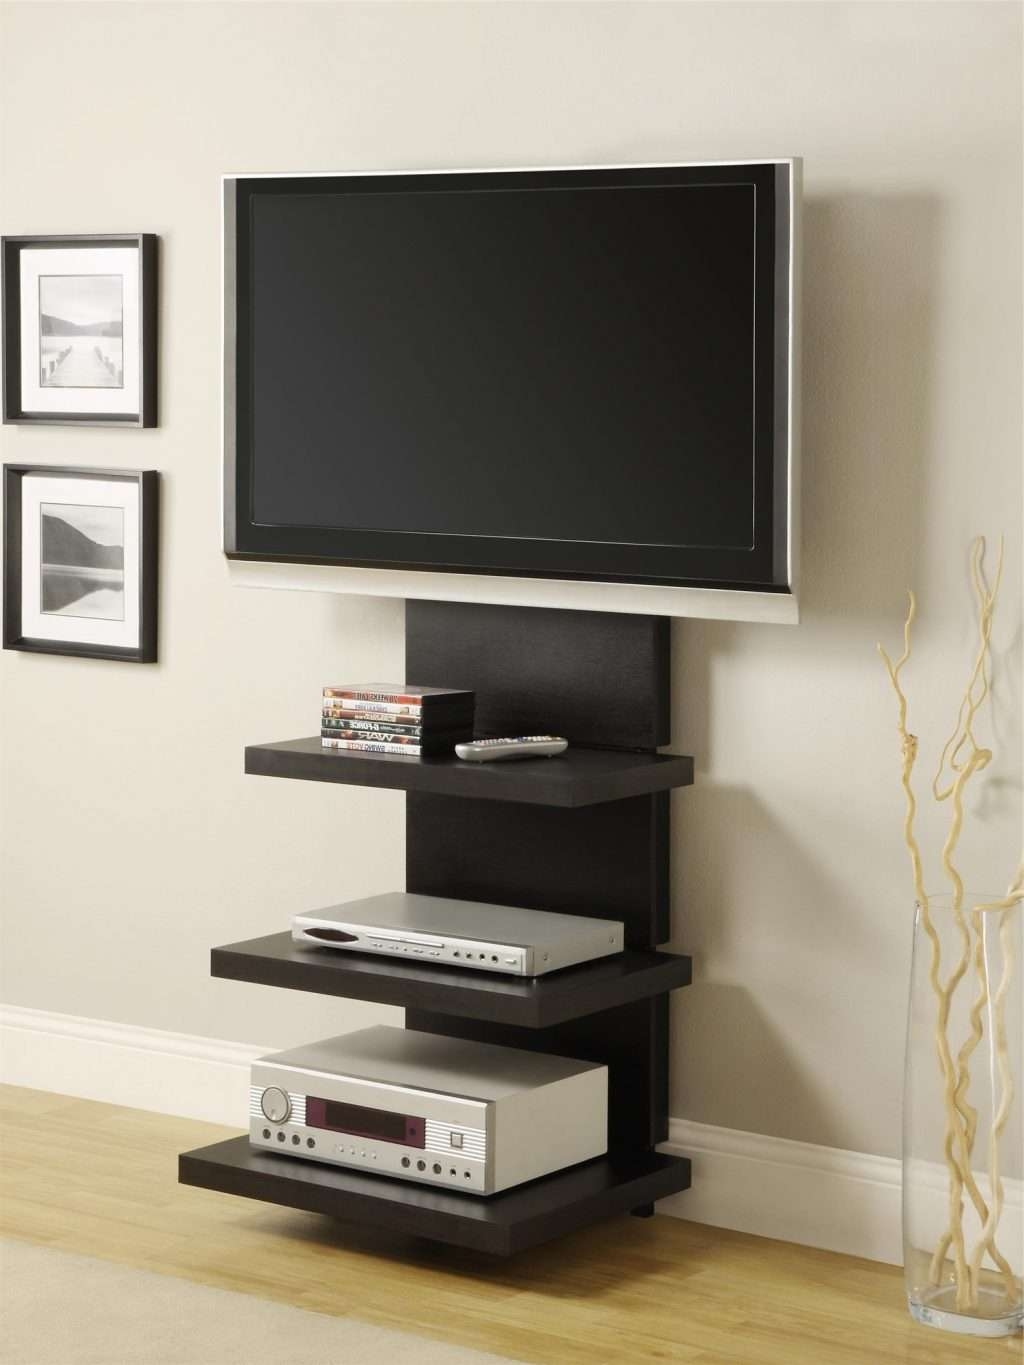 Living ~ Furniture Brown Yellows Wooden Tv Stands With Mounts And Within Yellow Tv Stands (View 13 of 15)